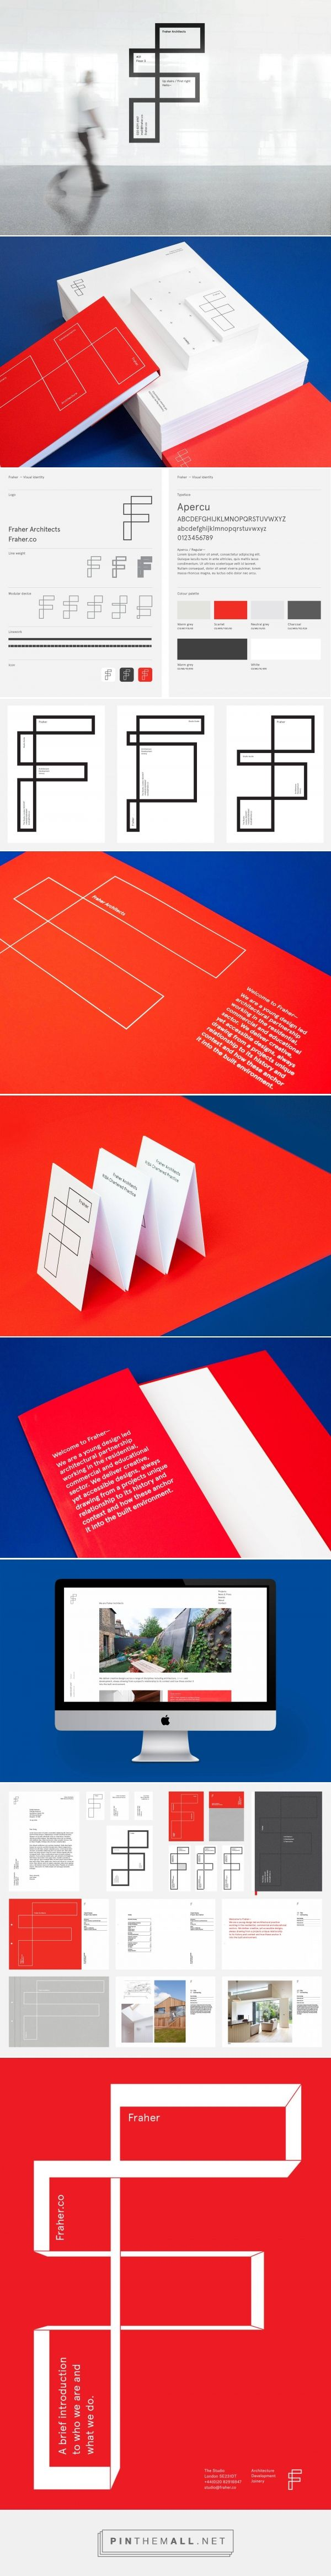 Fraher architects Visual identity system for London based Fraher architects. Our concept is based on the visual language of architecture. The logo is based on the plan view of the letter F. The intersecting compartments create a simple graphic device for containing text, images and texture. A vibrant red accent colour supports the minimal yet functional aesthetic. Applications include: suite of stationery, website, internal documents and presentation materials.